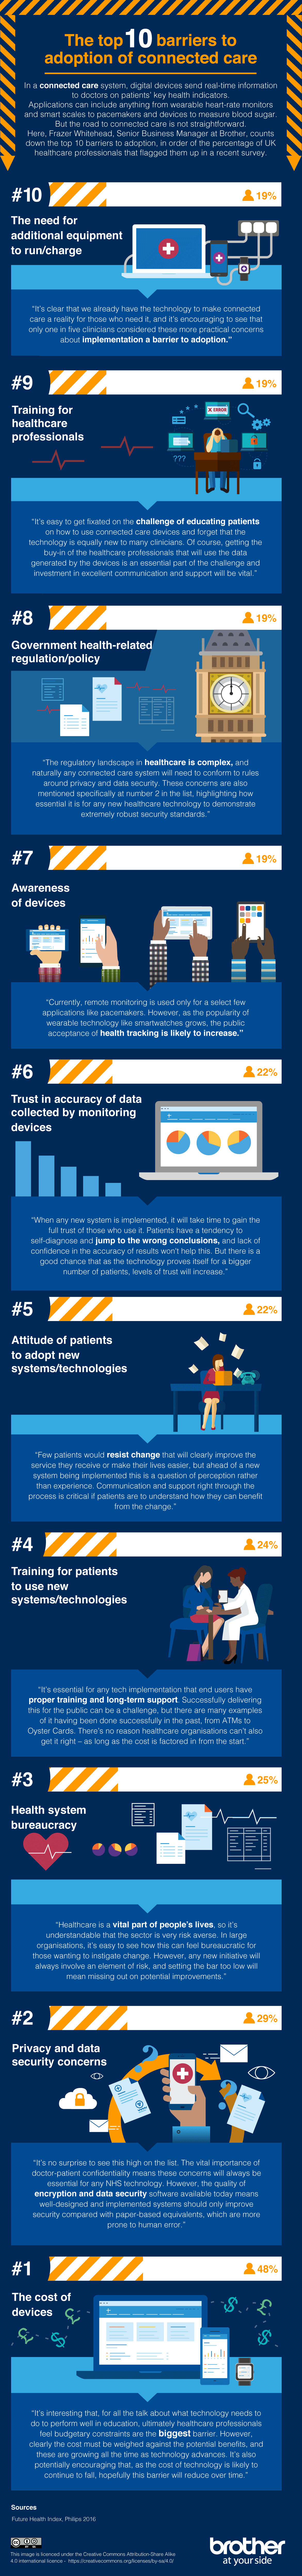 Brother healthcare infographic showing the technology barriers affecting connected patient care